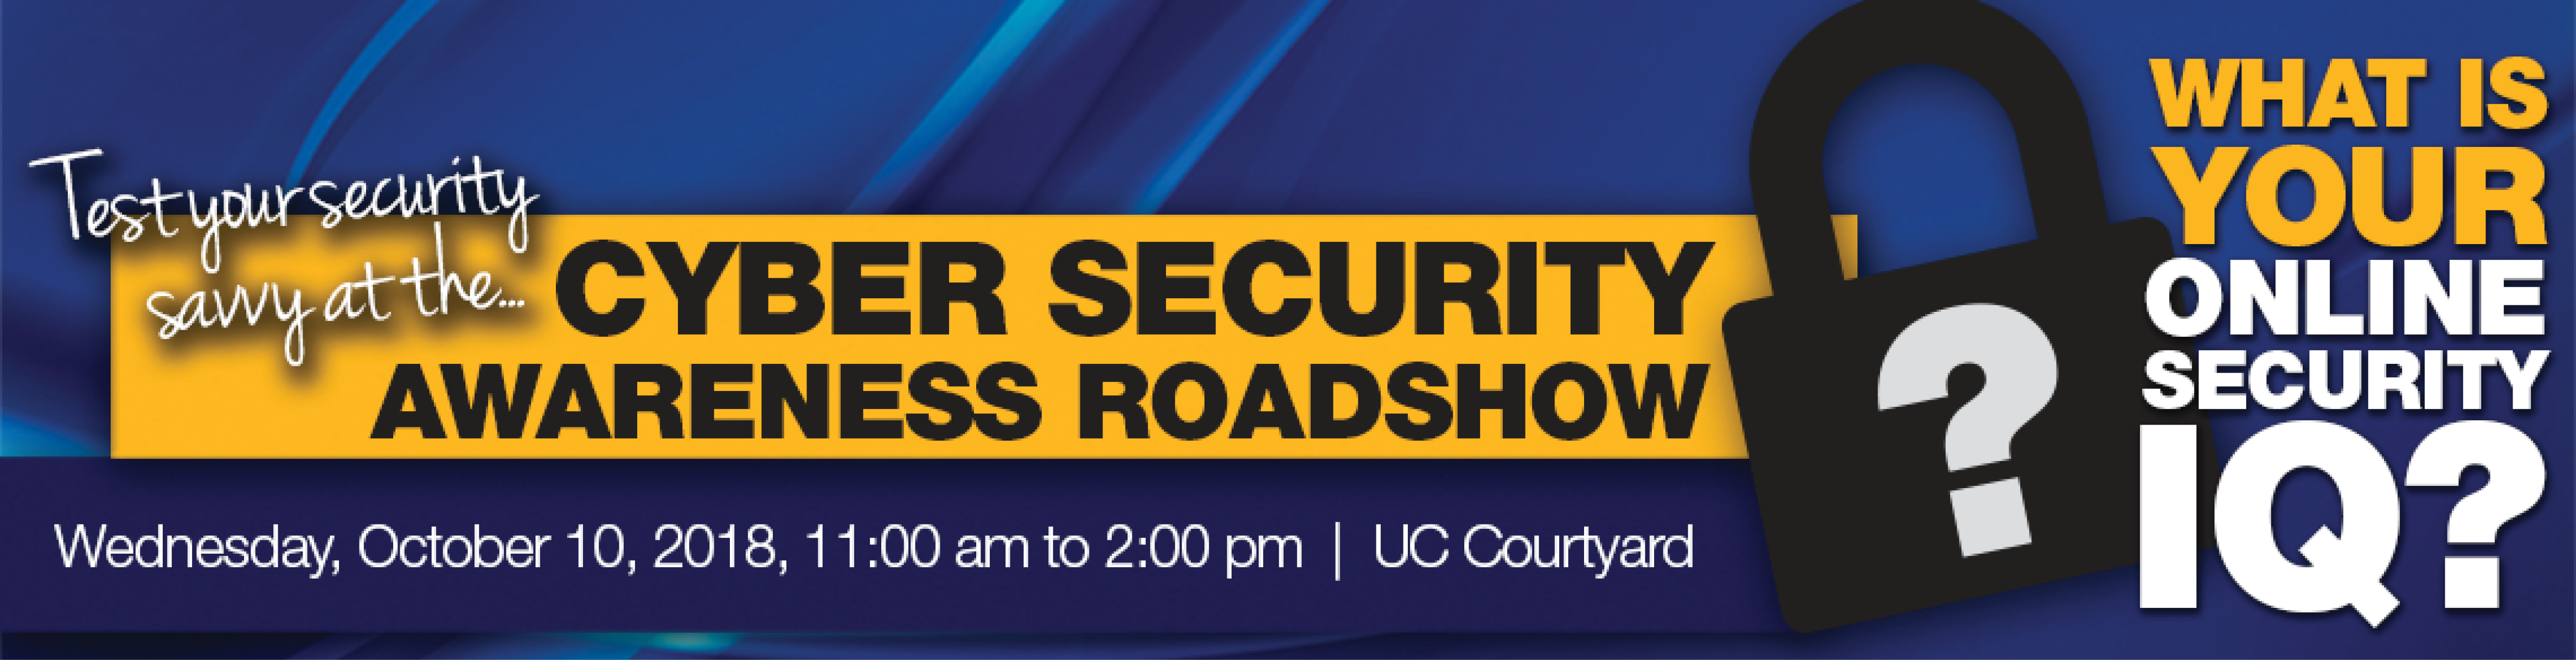 Security Awareness Roadshow Banner